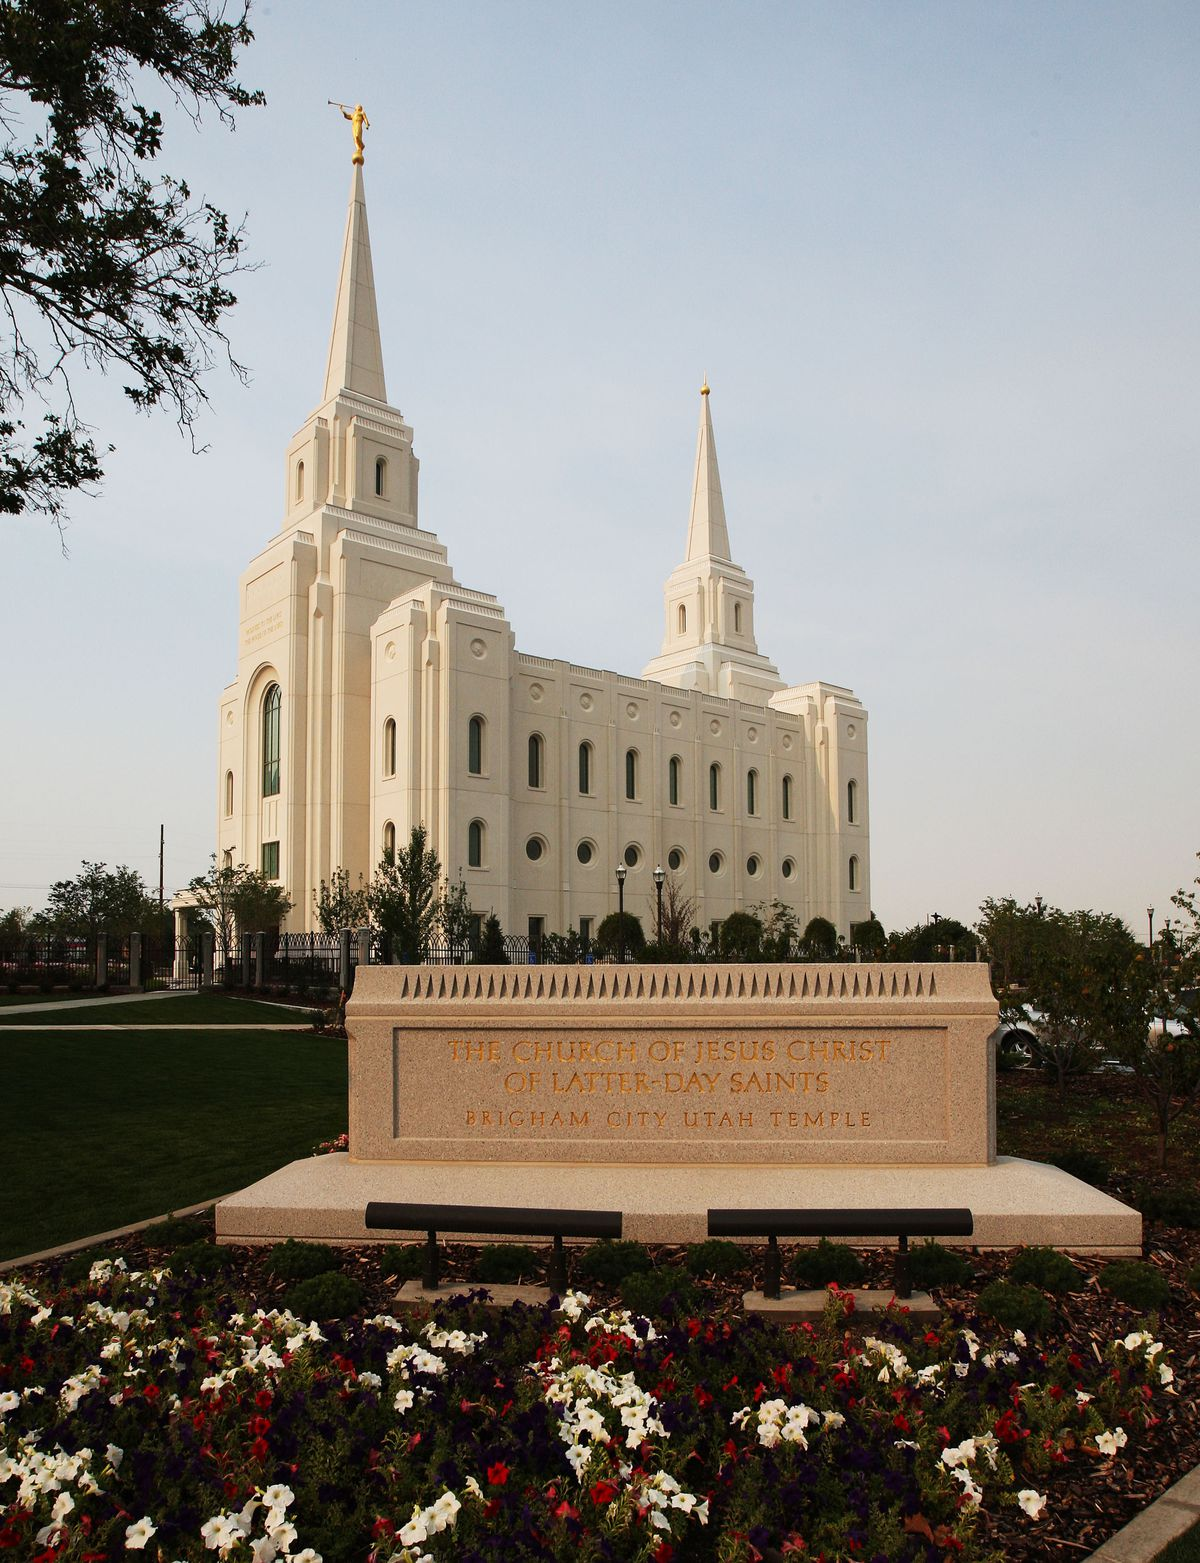 Brigham City Utah Temple, Tuesday, Aug. 14, 2012.